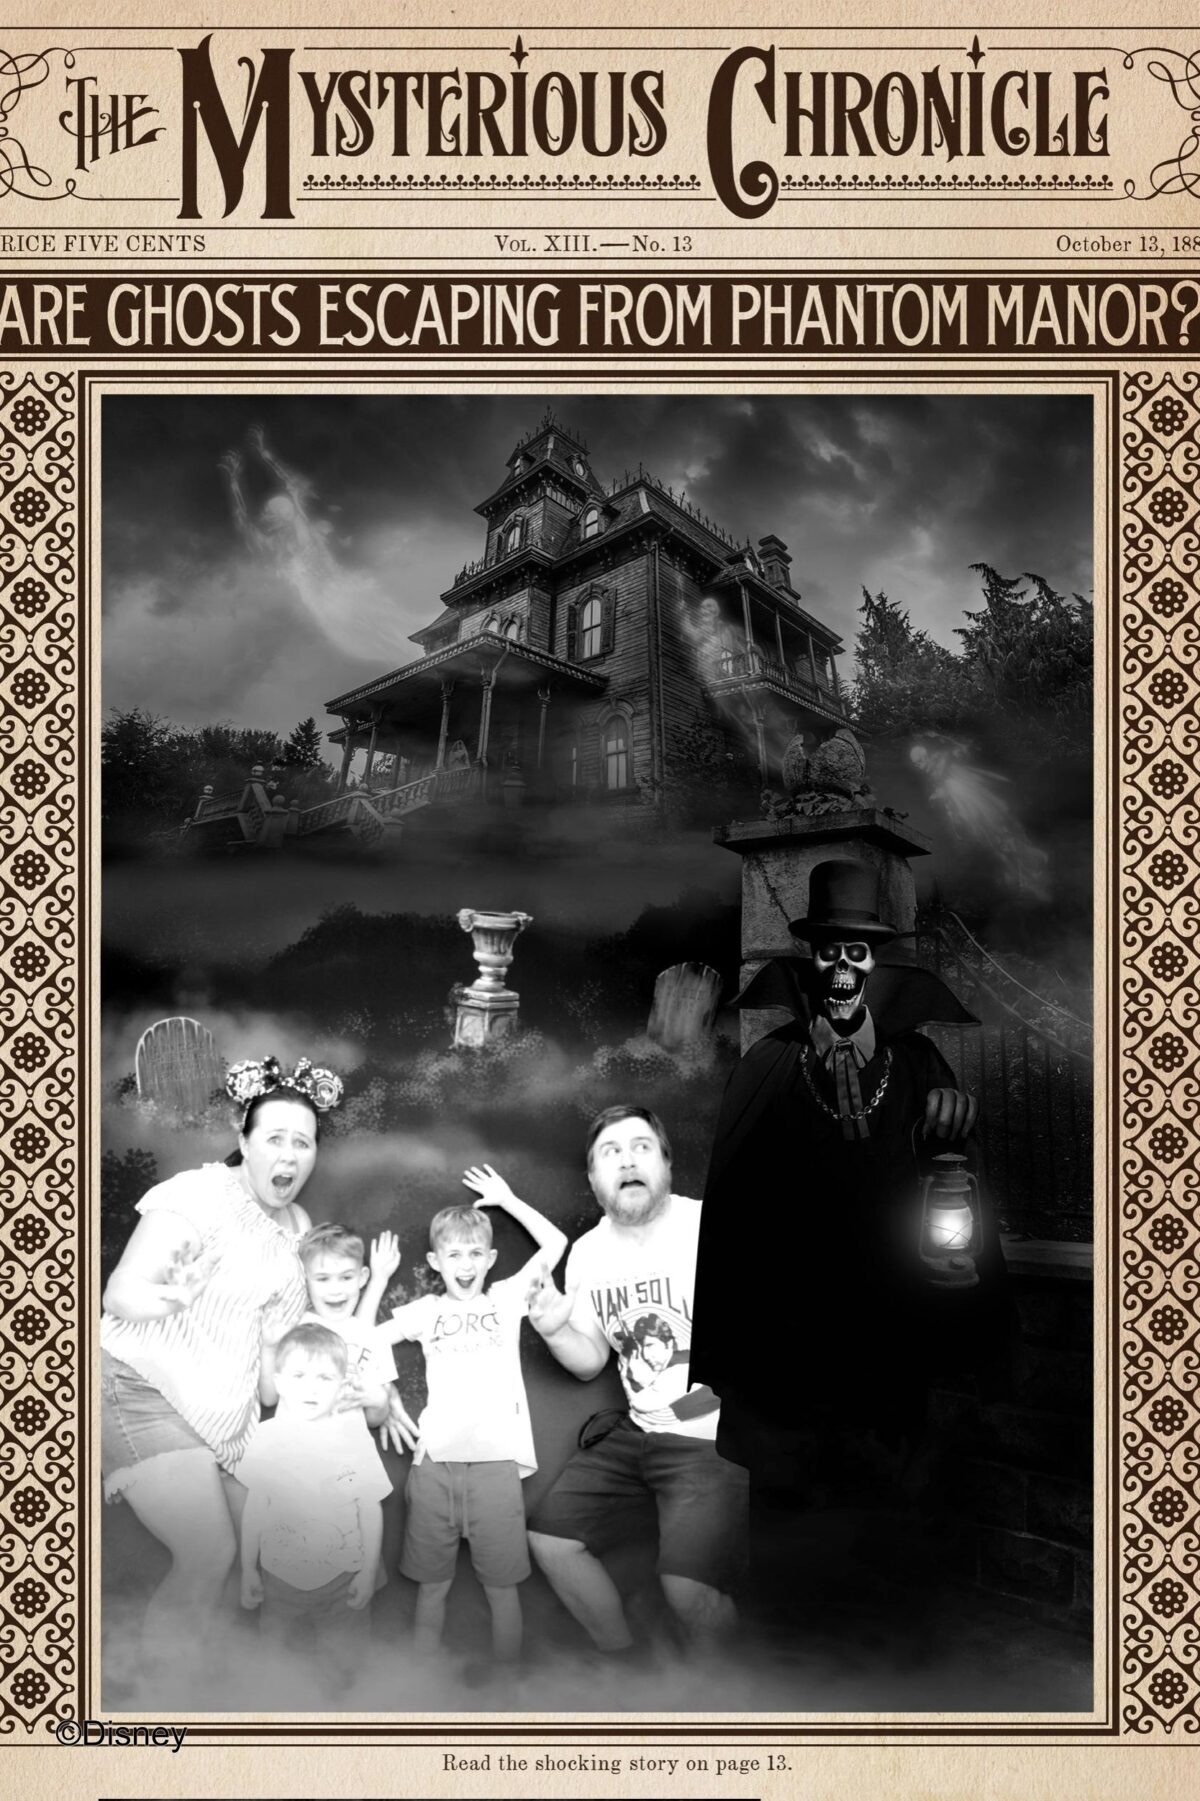 Image shows our personalised copy of the Mysterious Chronicle Newspaper Poster from Disneyland Paris Spirit Photography Booth where you can print a personalised copy of the Mysterious Chronicle by Phantom Manor as a Disney souvenir. Image by Keep Up With The Jones Family.